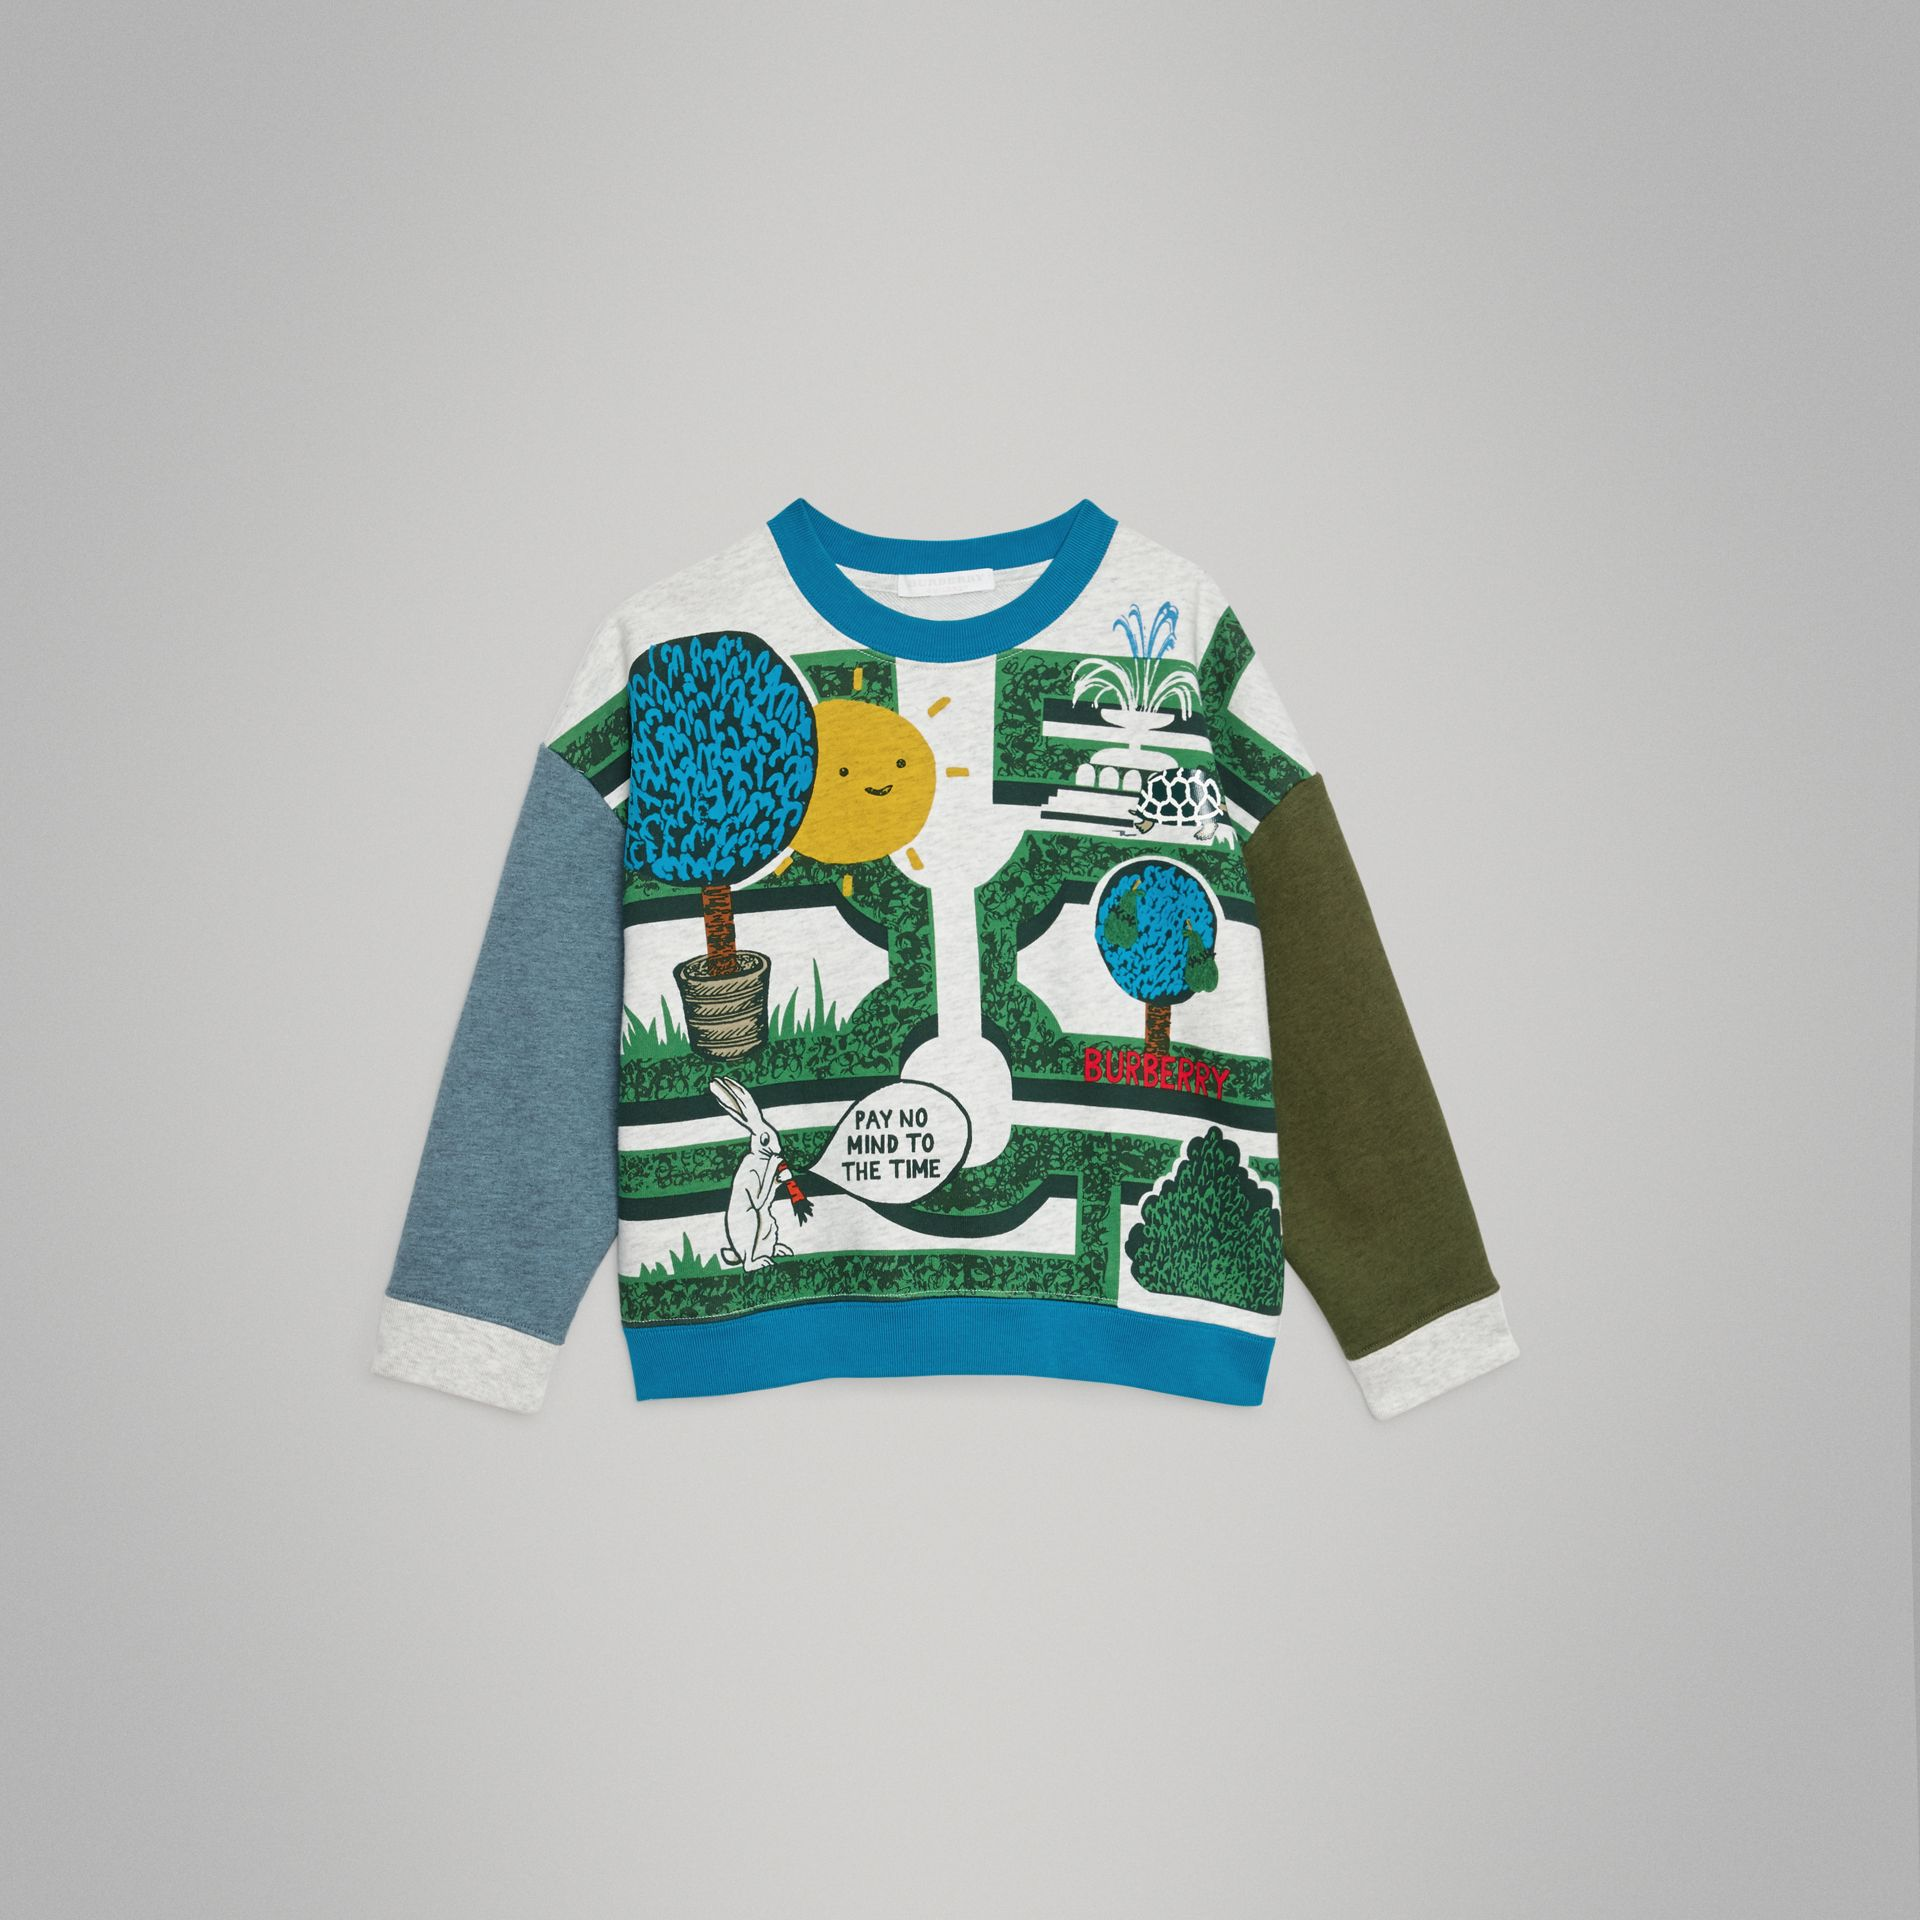 Hedge Maze Print Cotton Sweatshirt in Multicolour | Burberry - gallery image 0